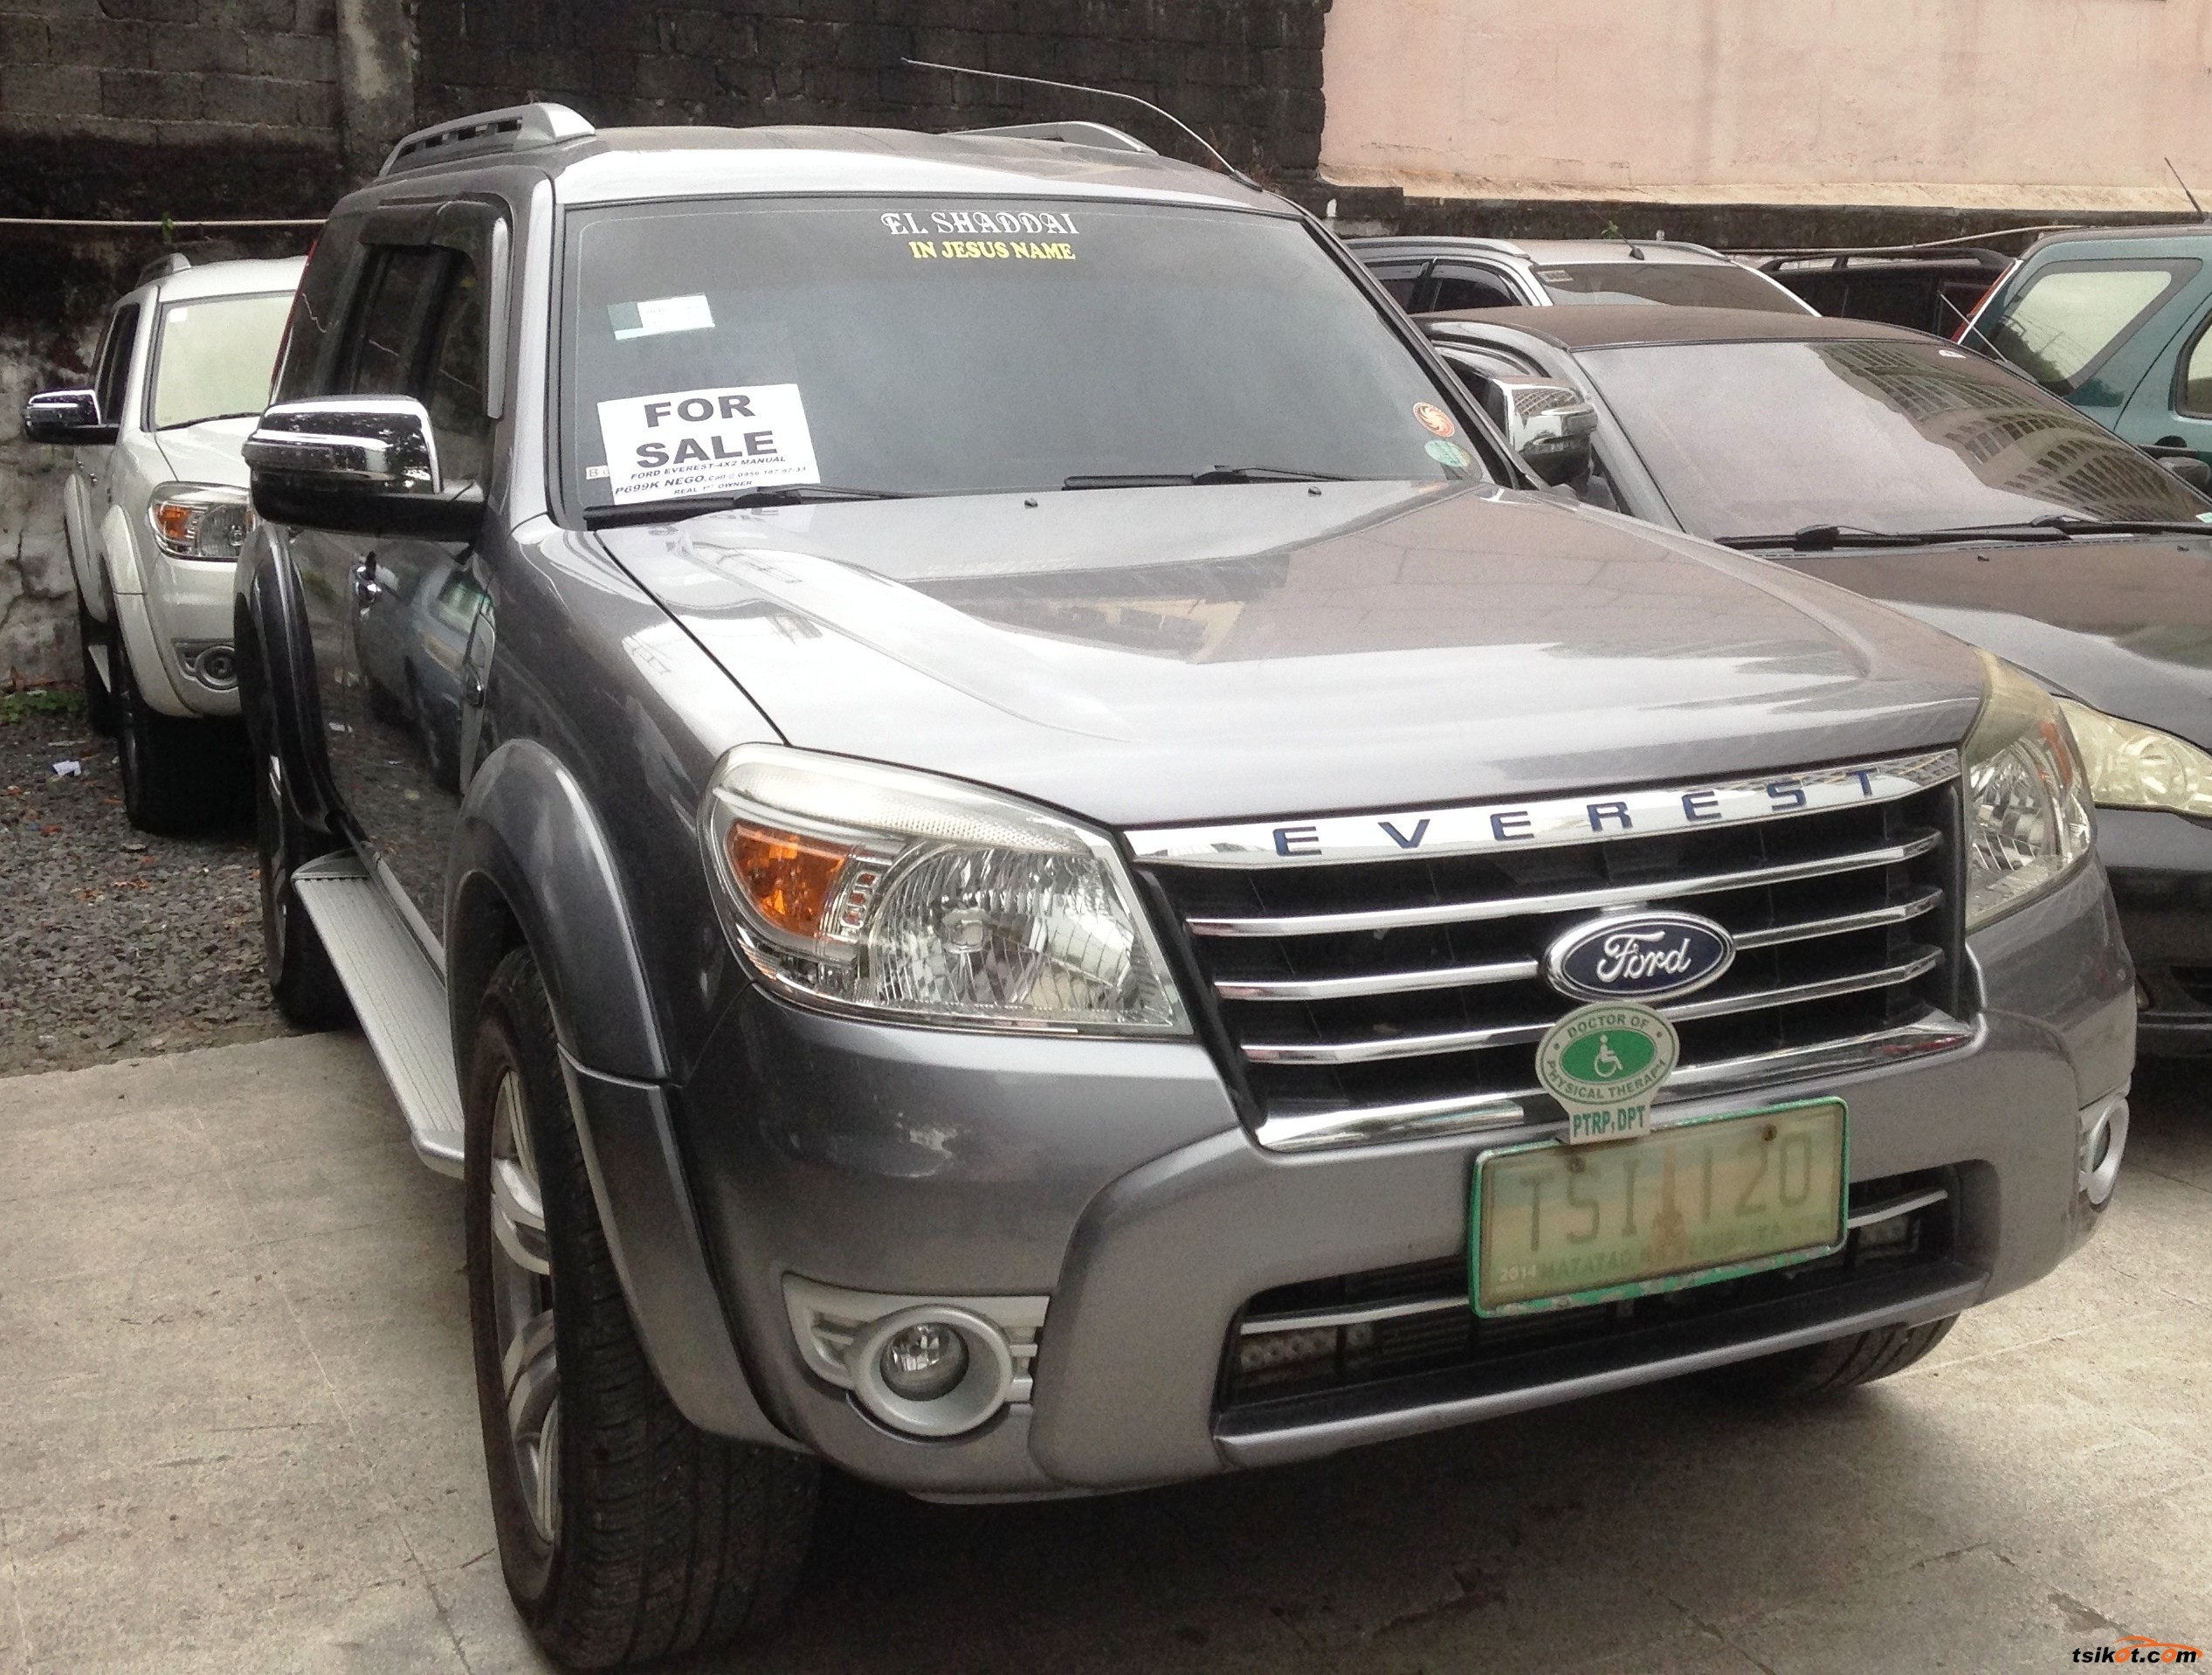 Ford Everest 2012 - 7